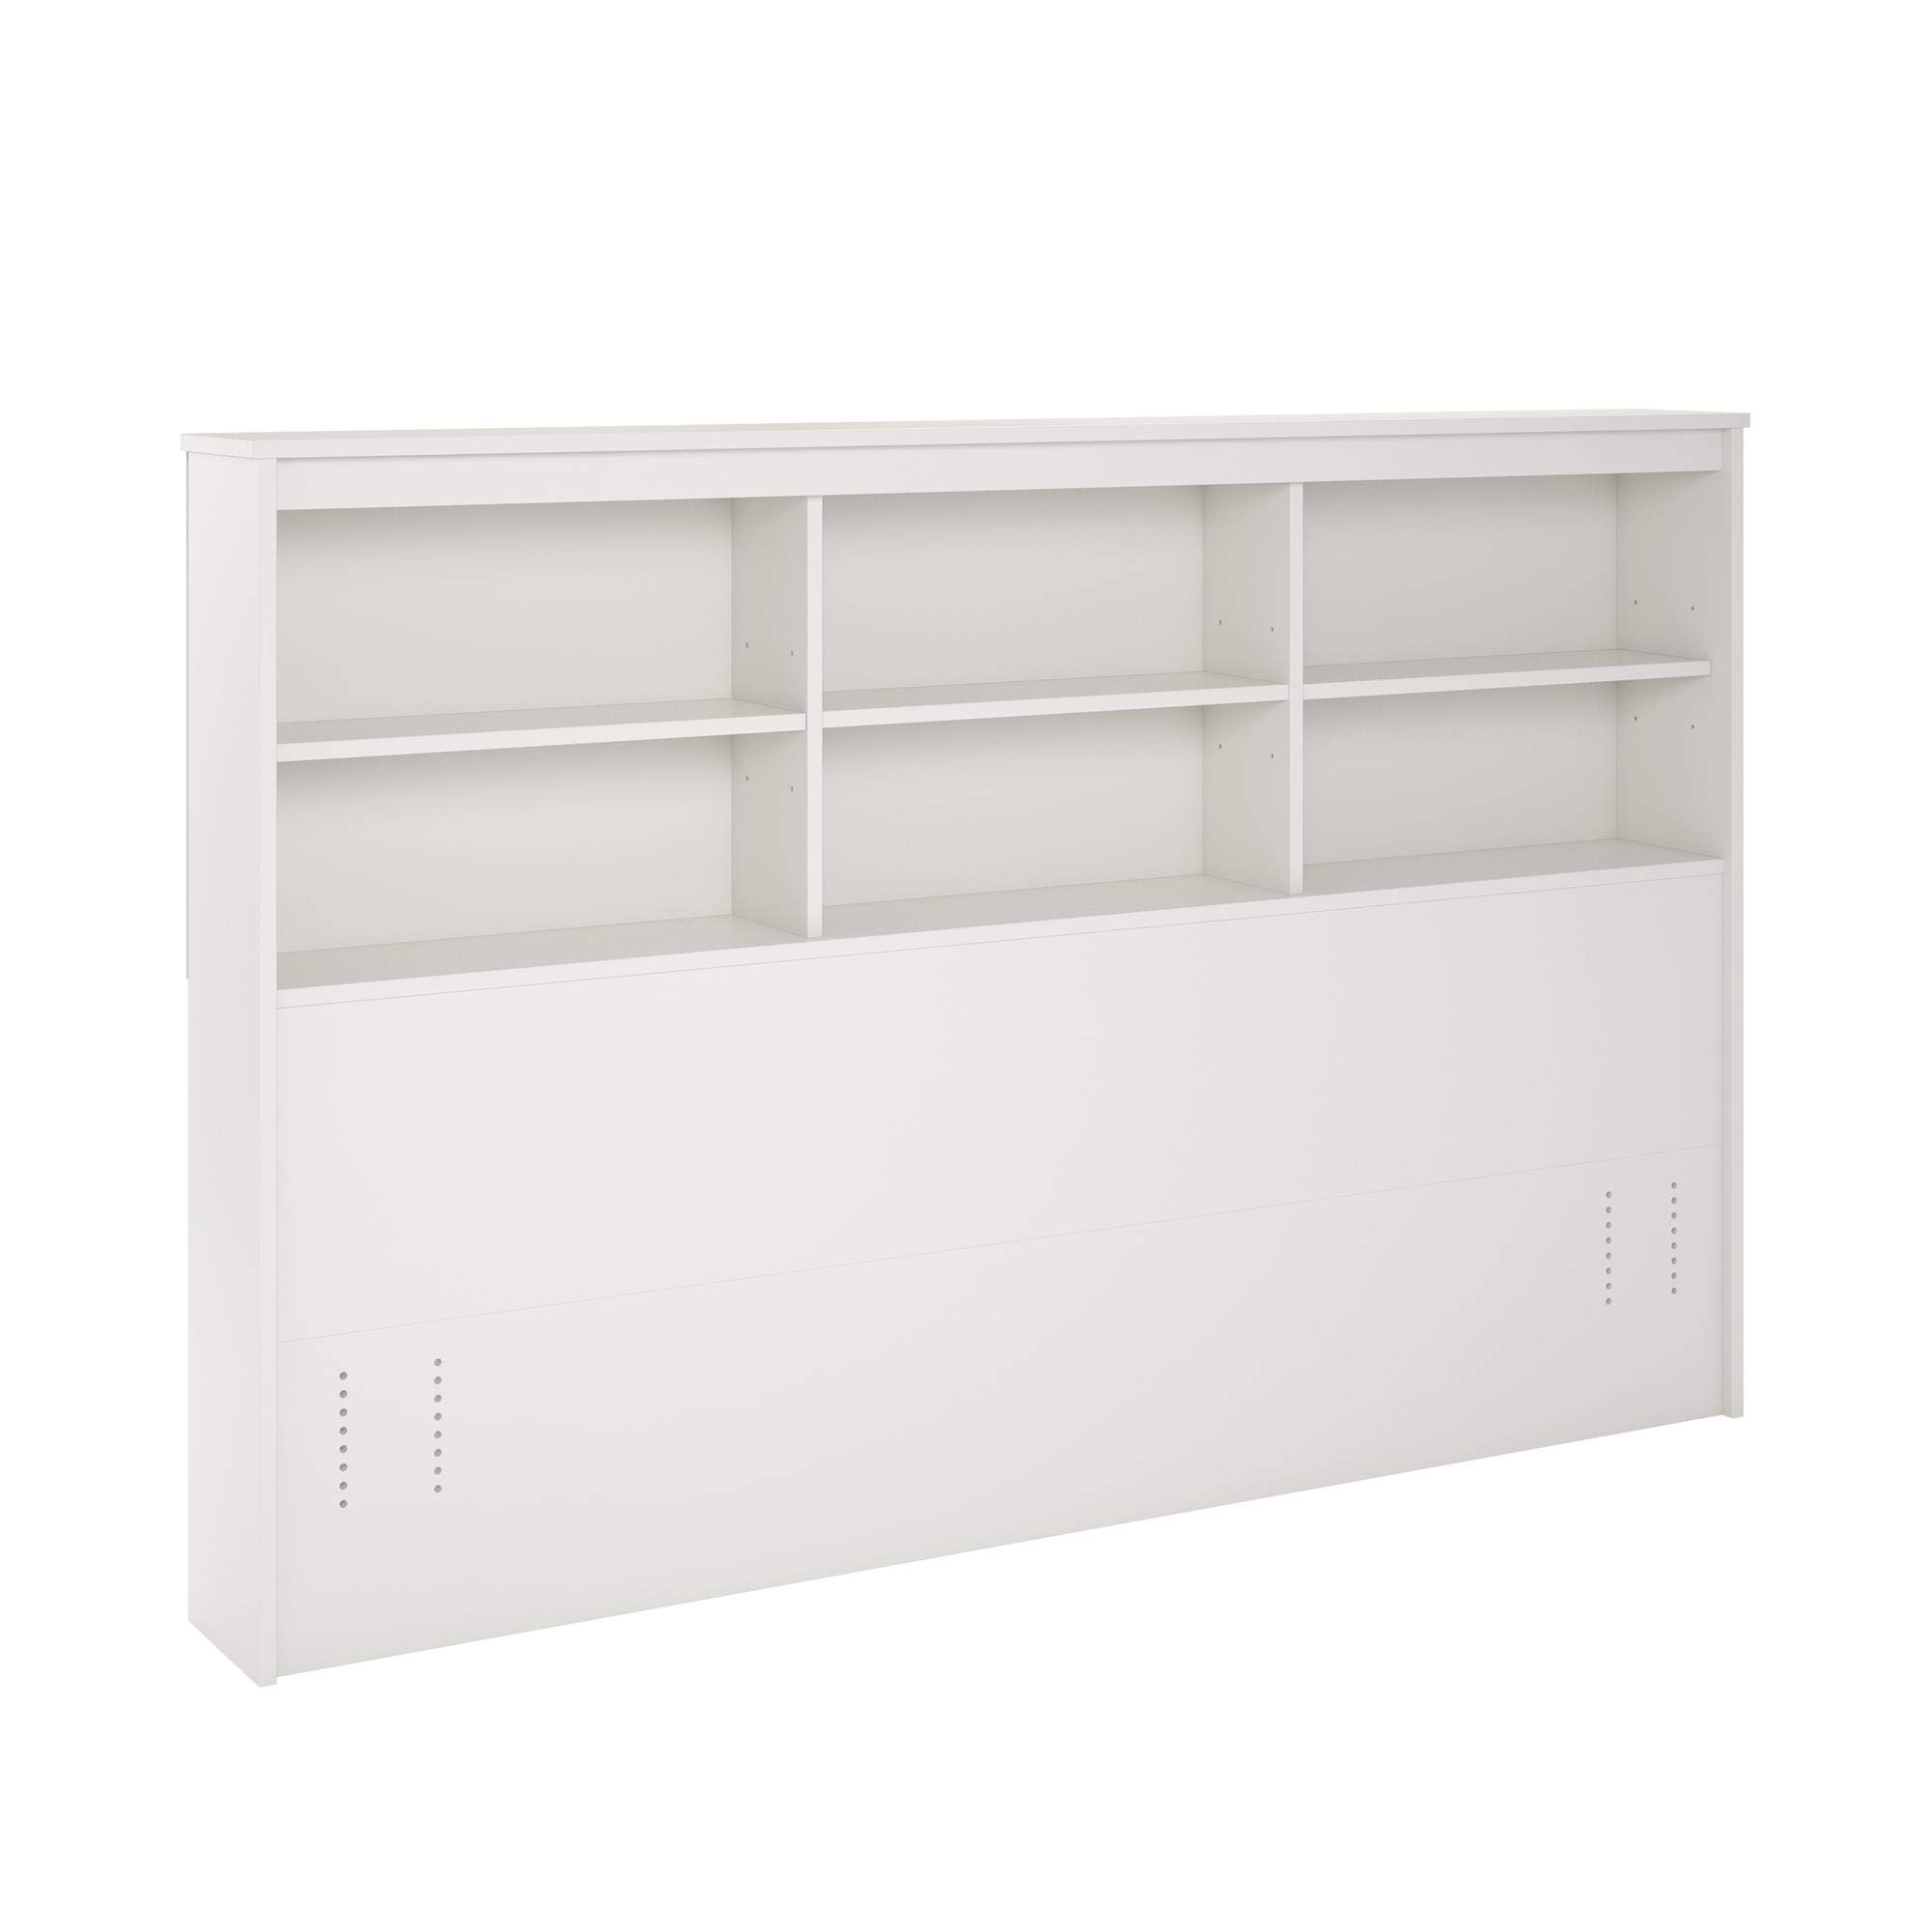 REALROOMS Lacey Full/Queen Storage Headboard, White